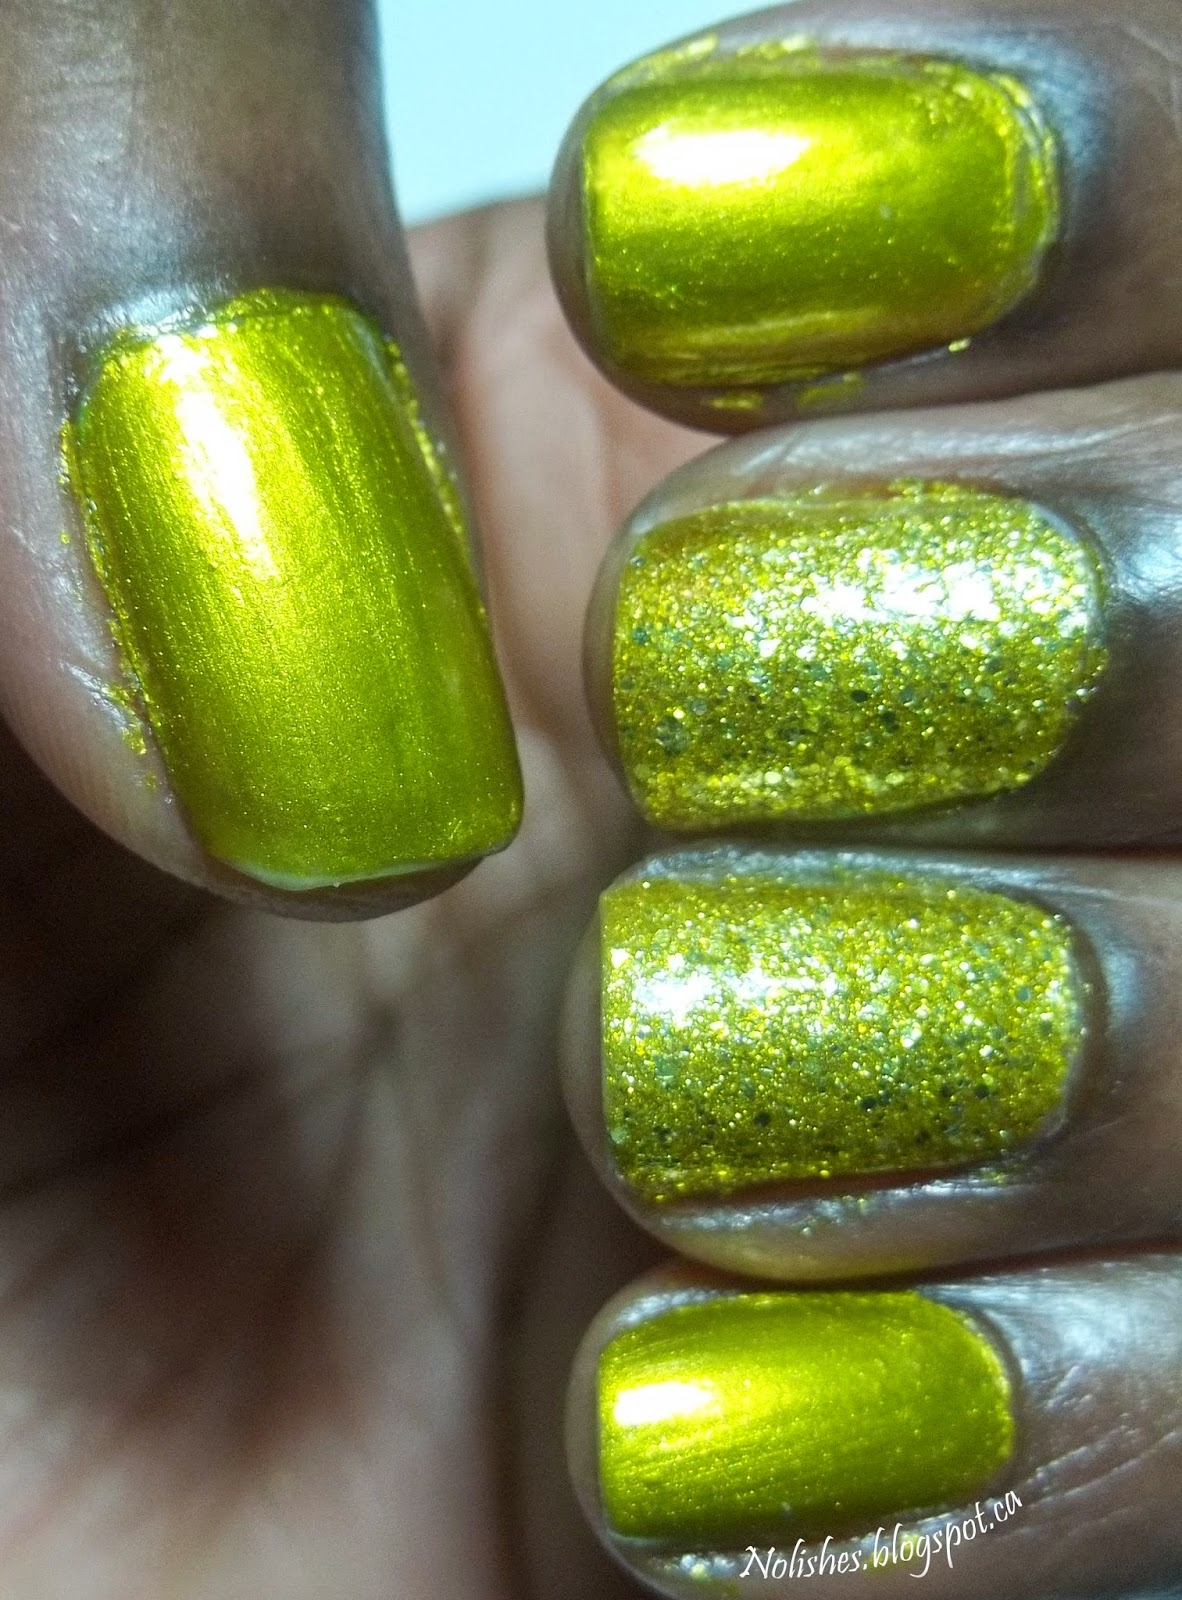 A manicure featuring chartreuse nail polish in 2 different ways. The thumb, index, and pinky are covered in a metallic chartreuse polish, while the ring finger and middle finger feature a chartreuse glitter polish.